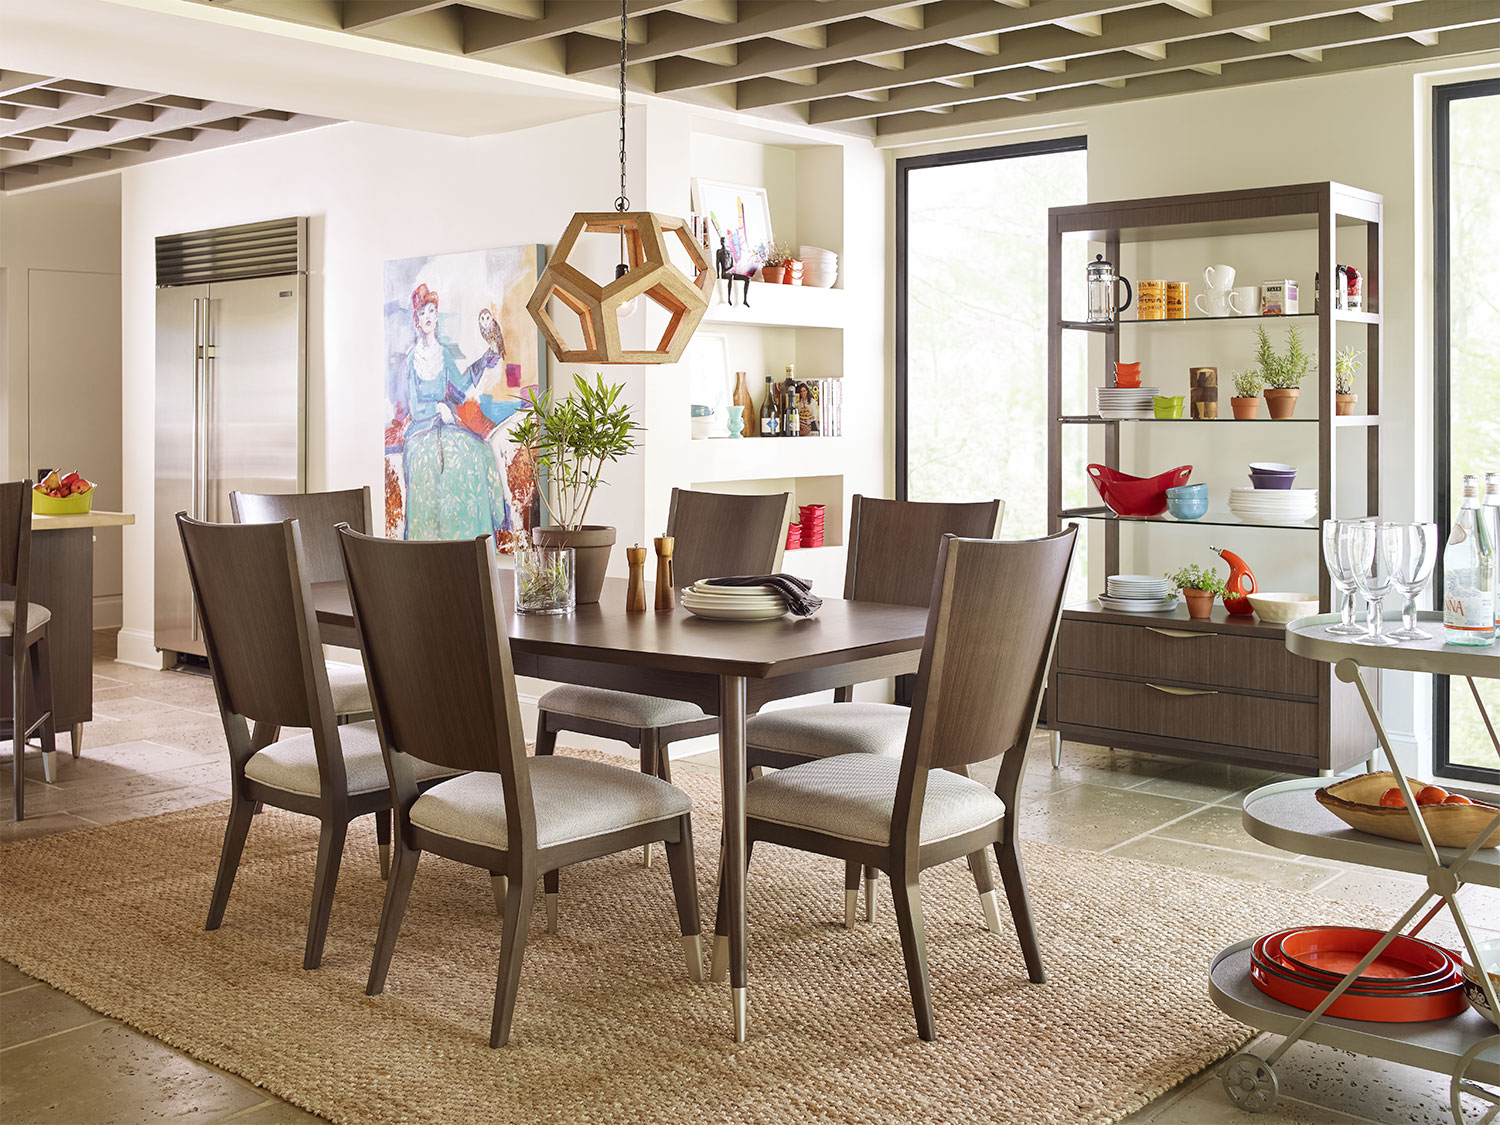 The Rachael Ray Soho Dining Room Collection